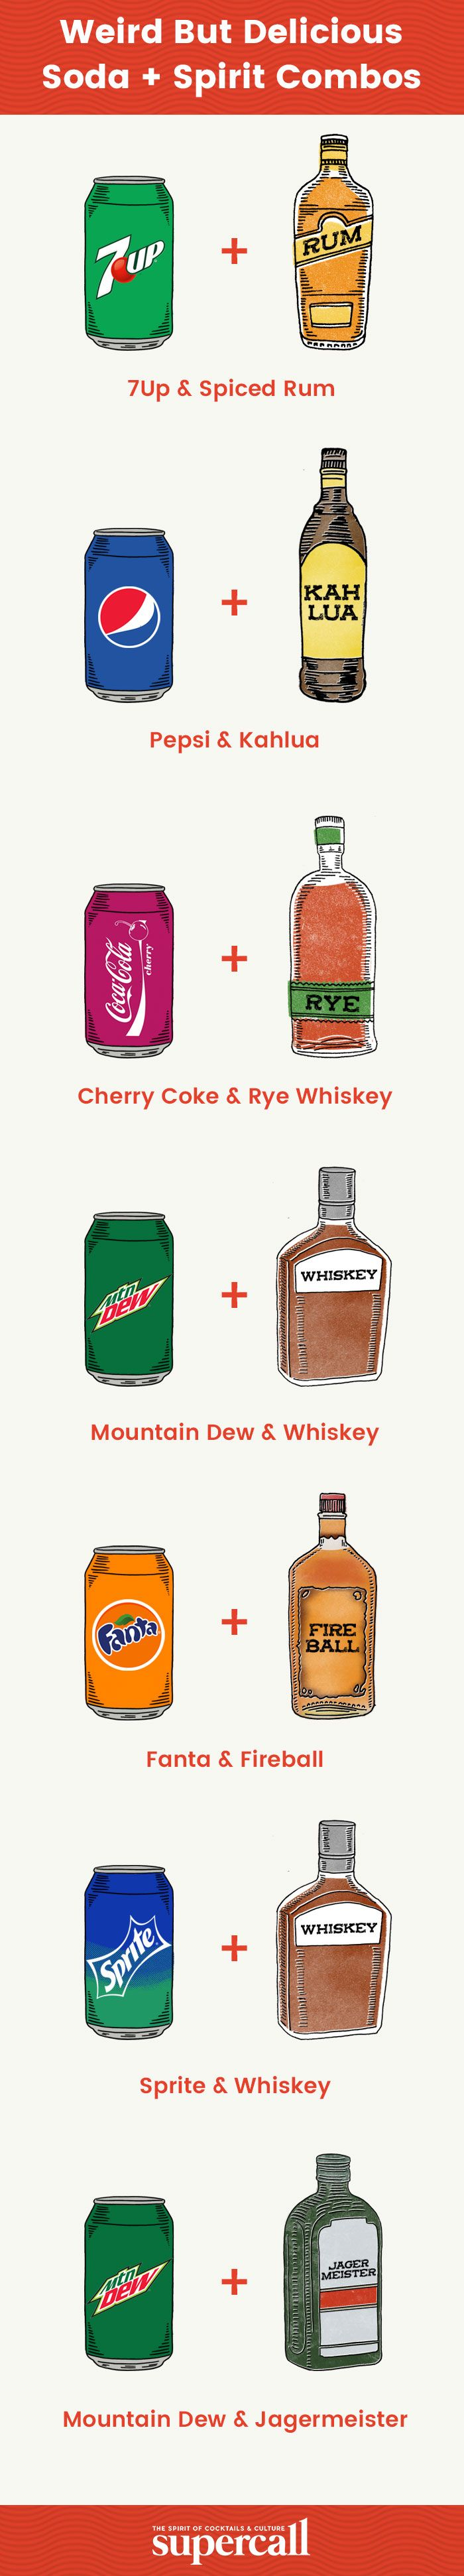 7 Weird (But Delicious) Soda and Spirit Combos You Need to Try